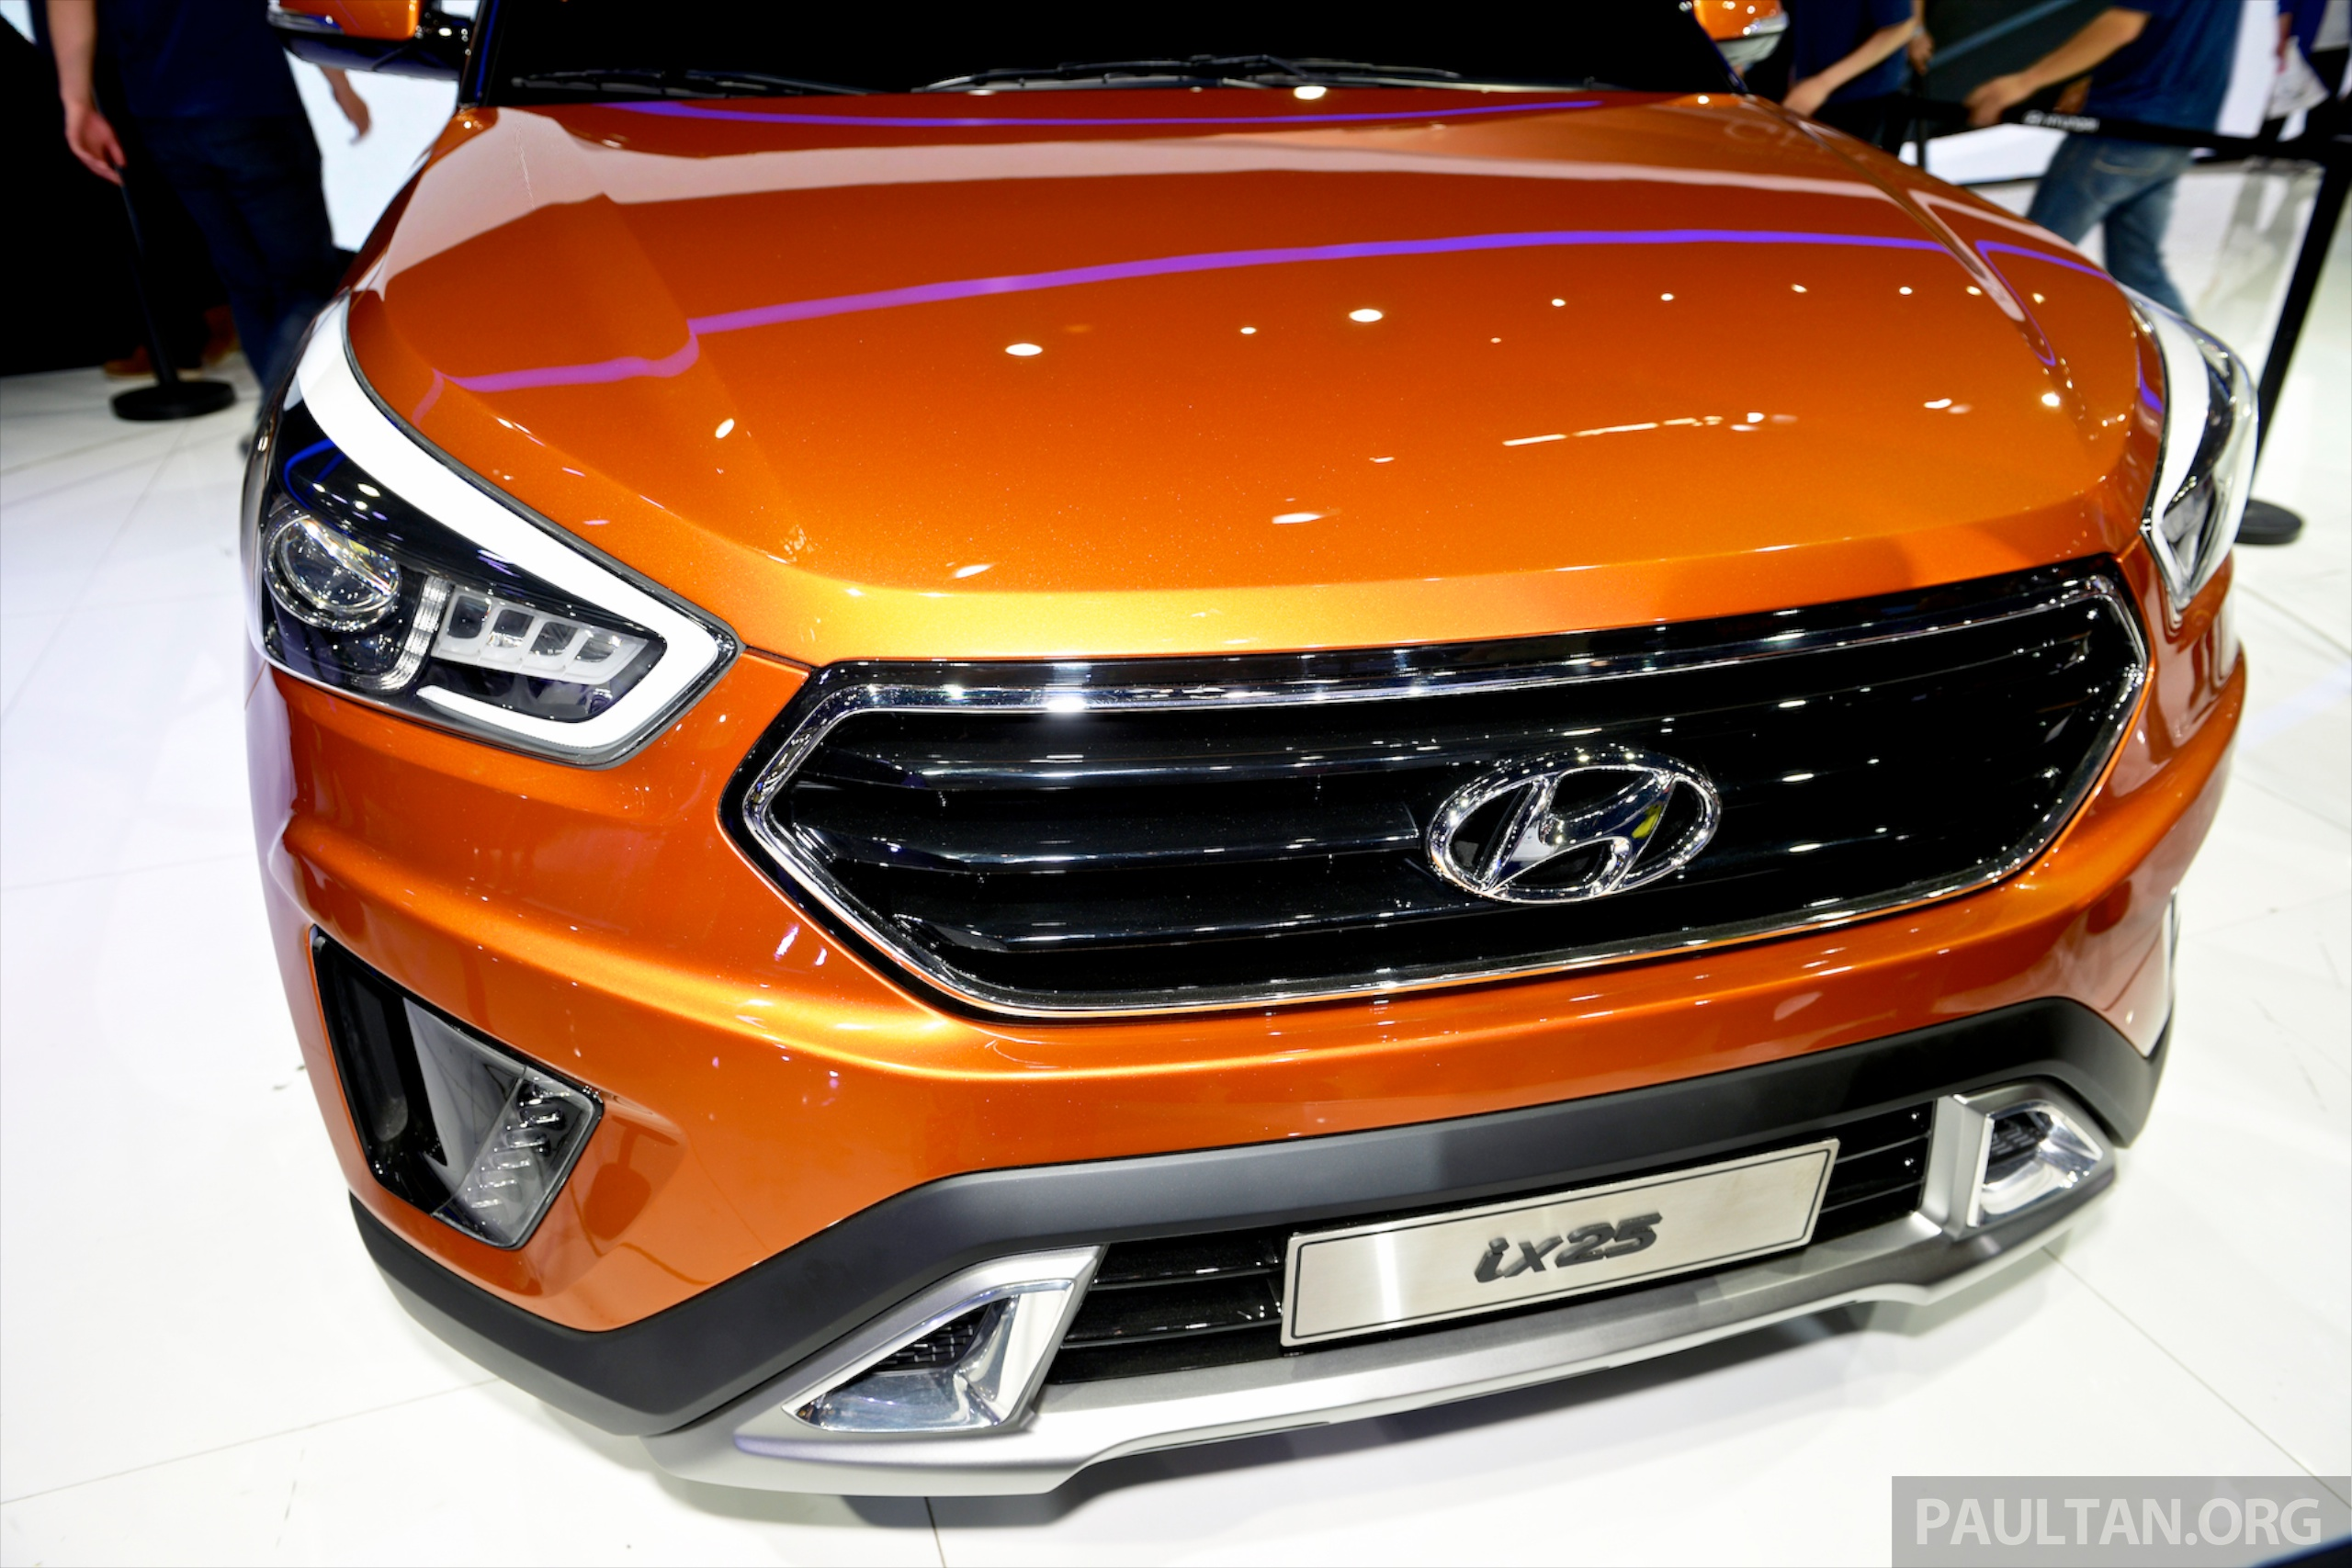 china of gallery spied creta photo undisguised european ahead hyundai out roll in photographed completely news